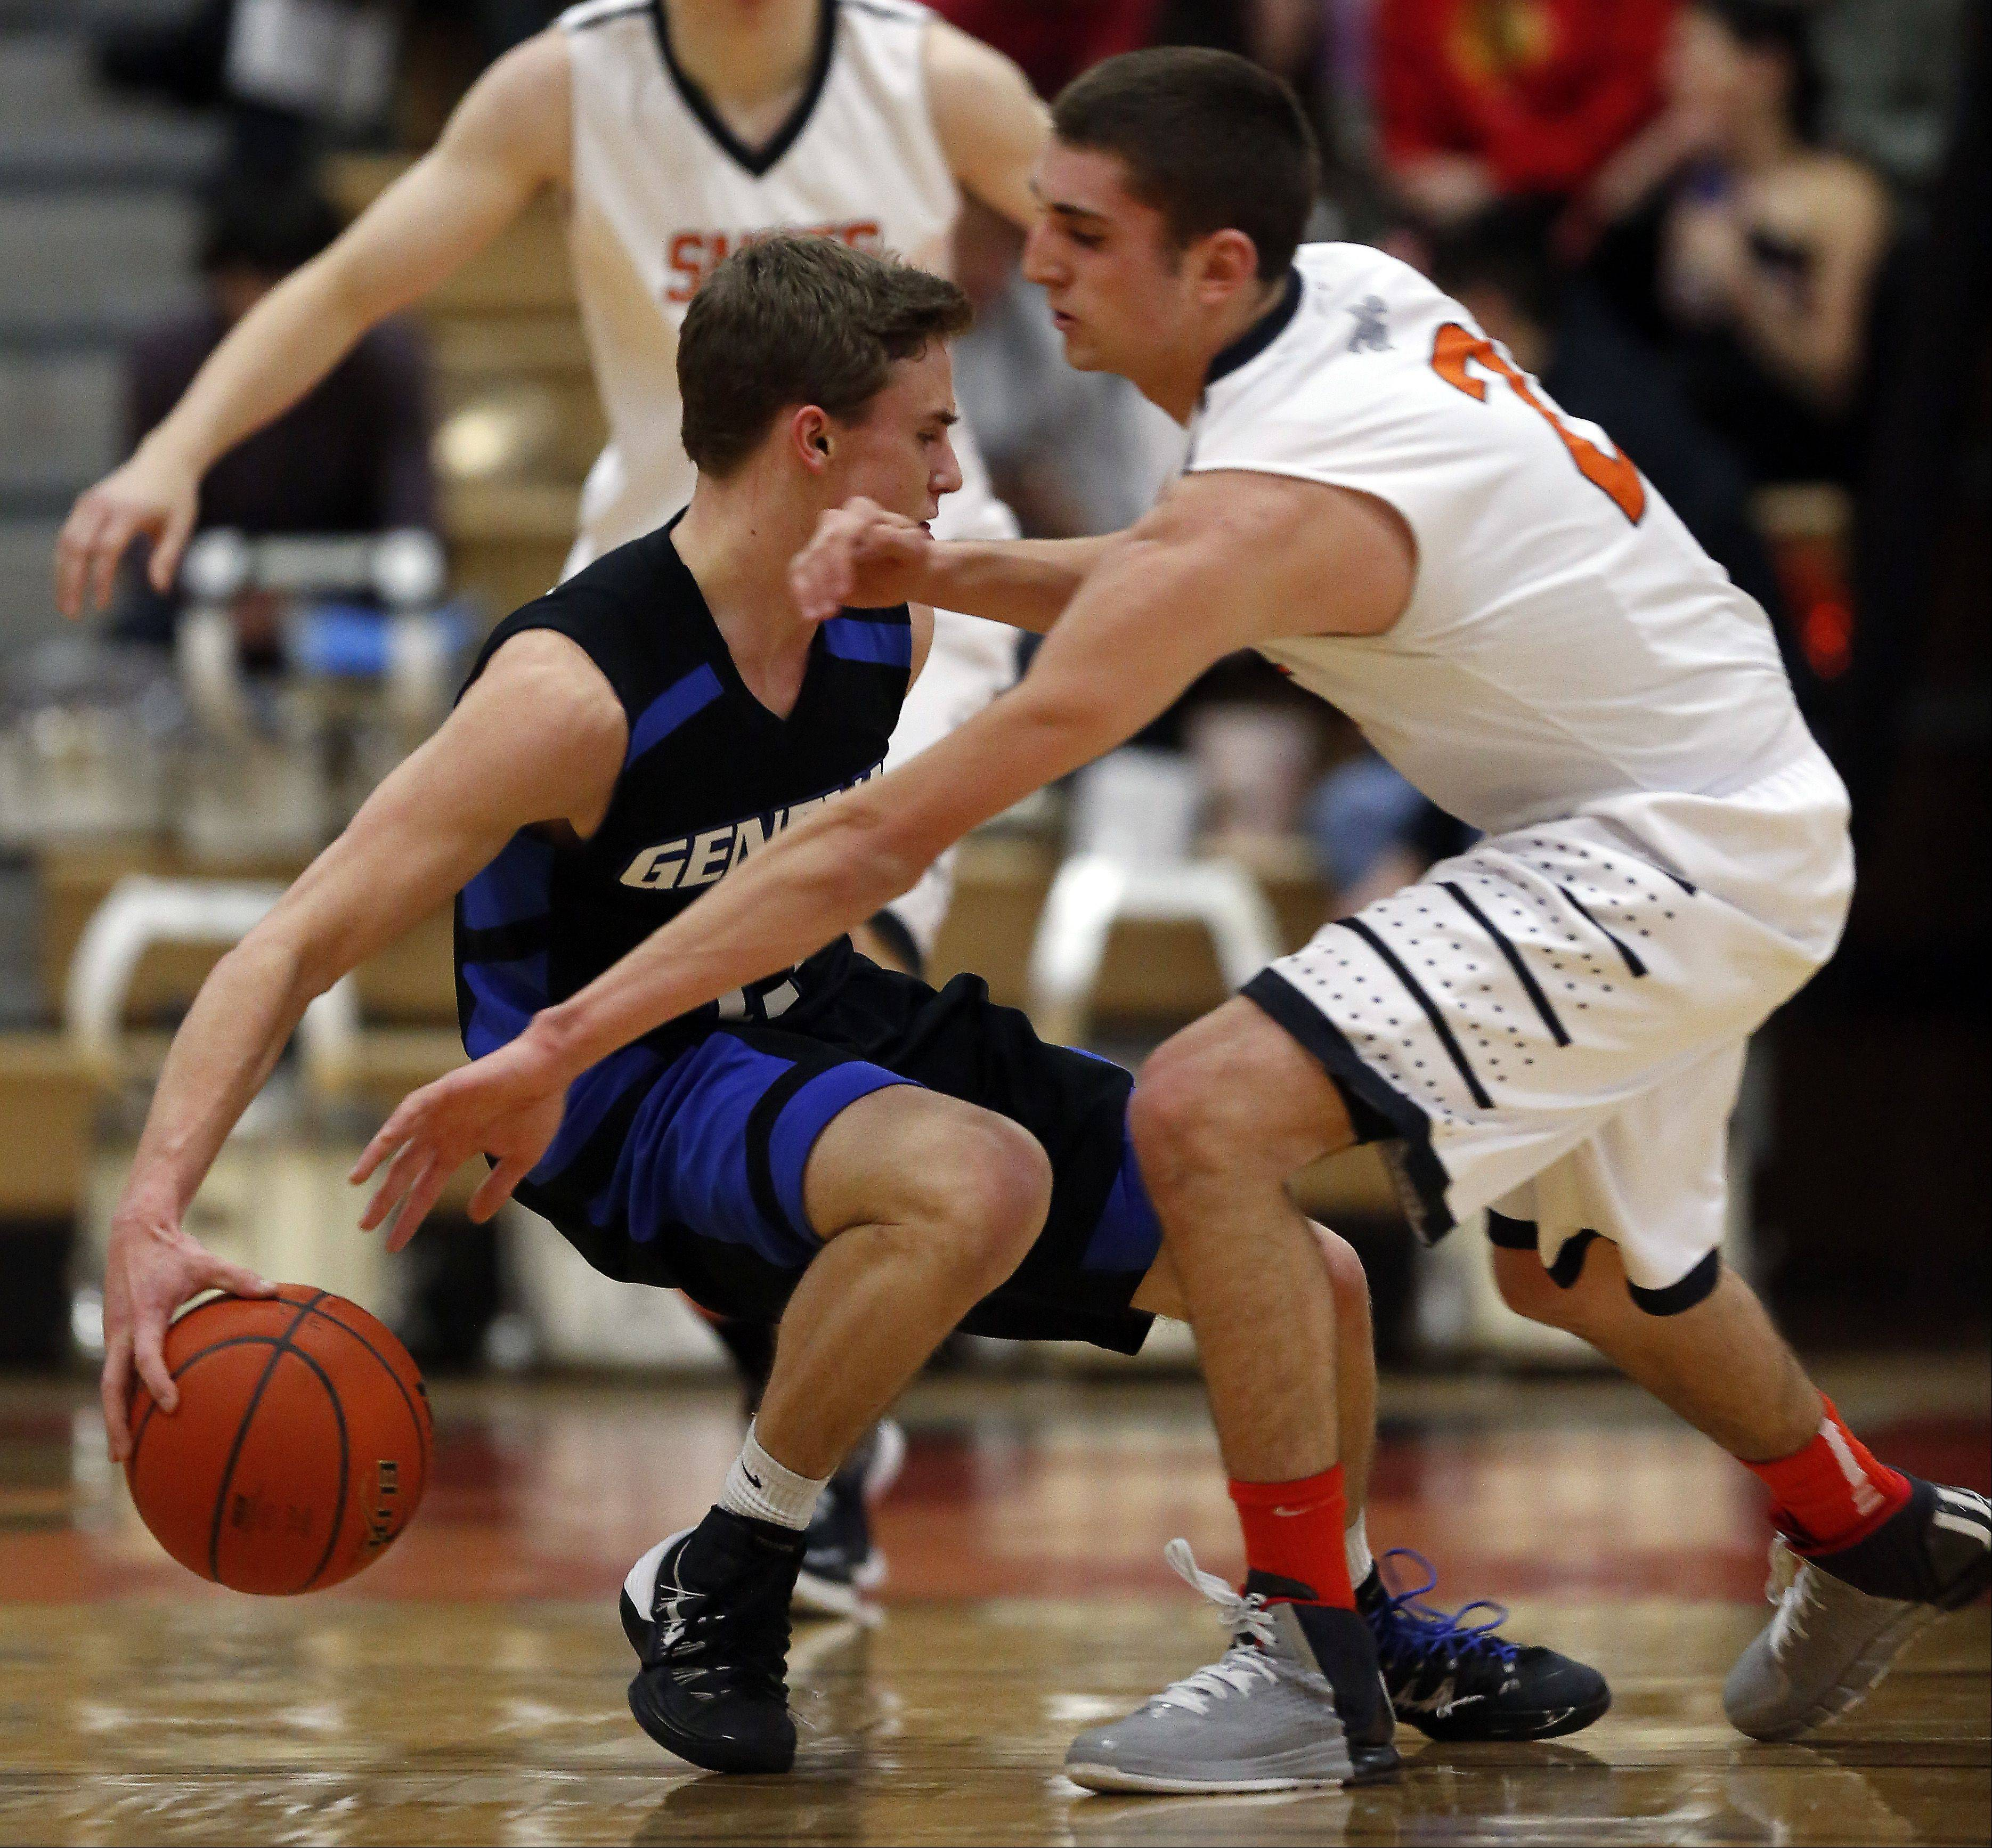 Geneva's Cam Cook, 11, works the ball around his back and away from St. Charles East's Dom Adduci, 2, during boys Basketball Saturday.